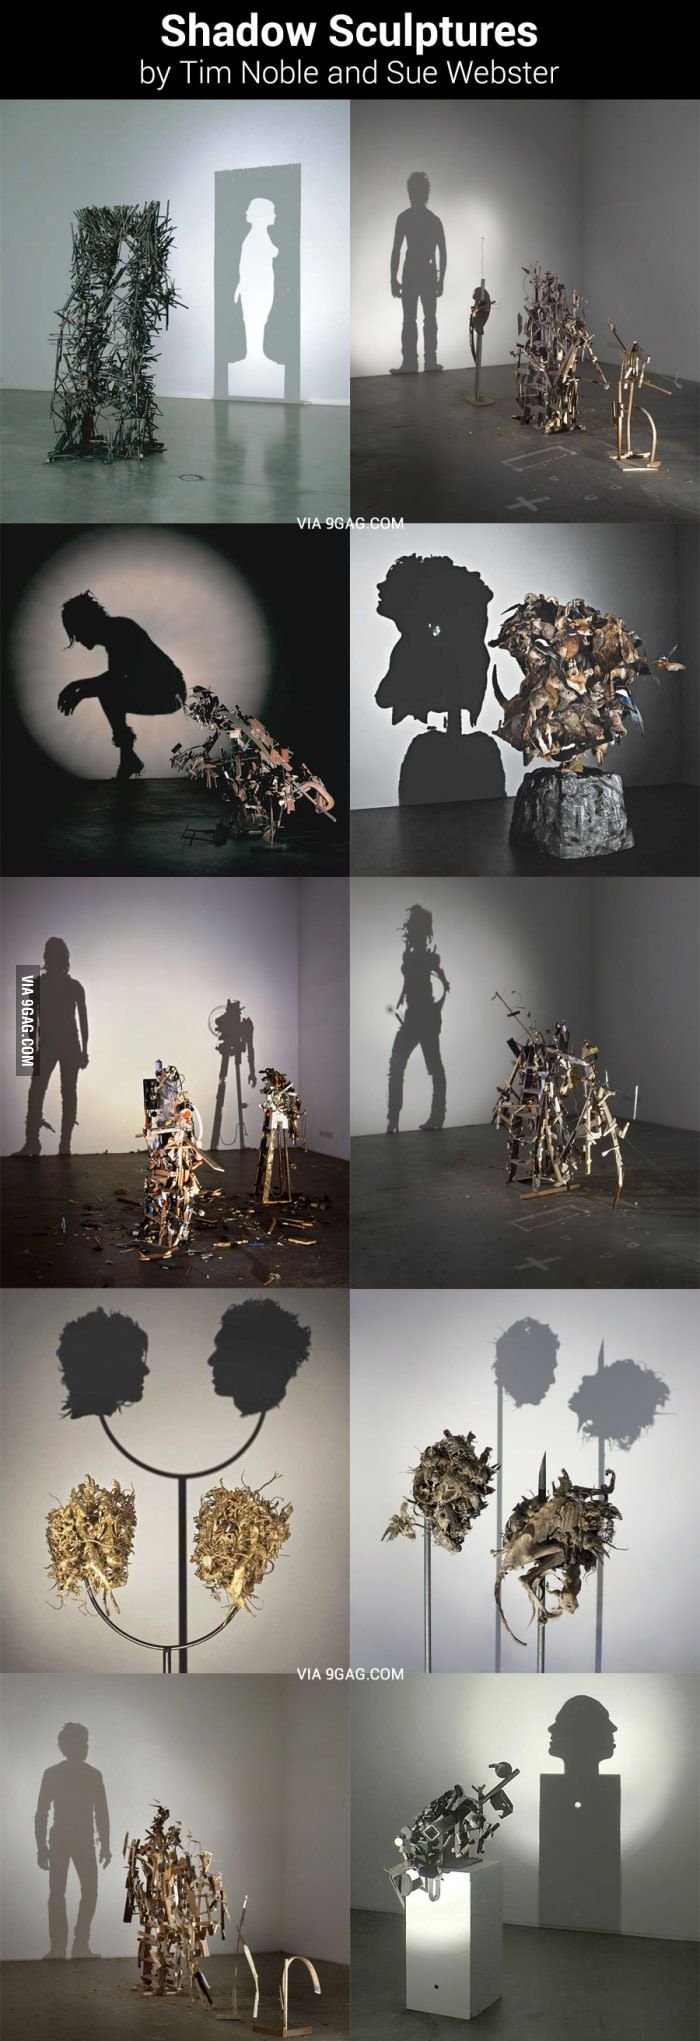 I like how different these pieces are. I think it's interesting how they draw interest to the shadow instead of the form itself. I also like the use of found objects.